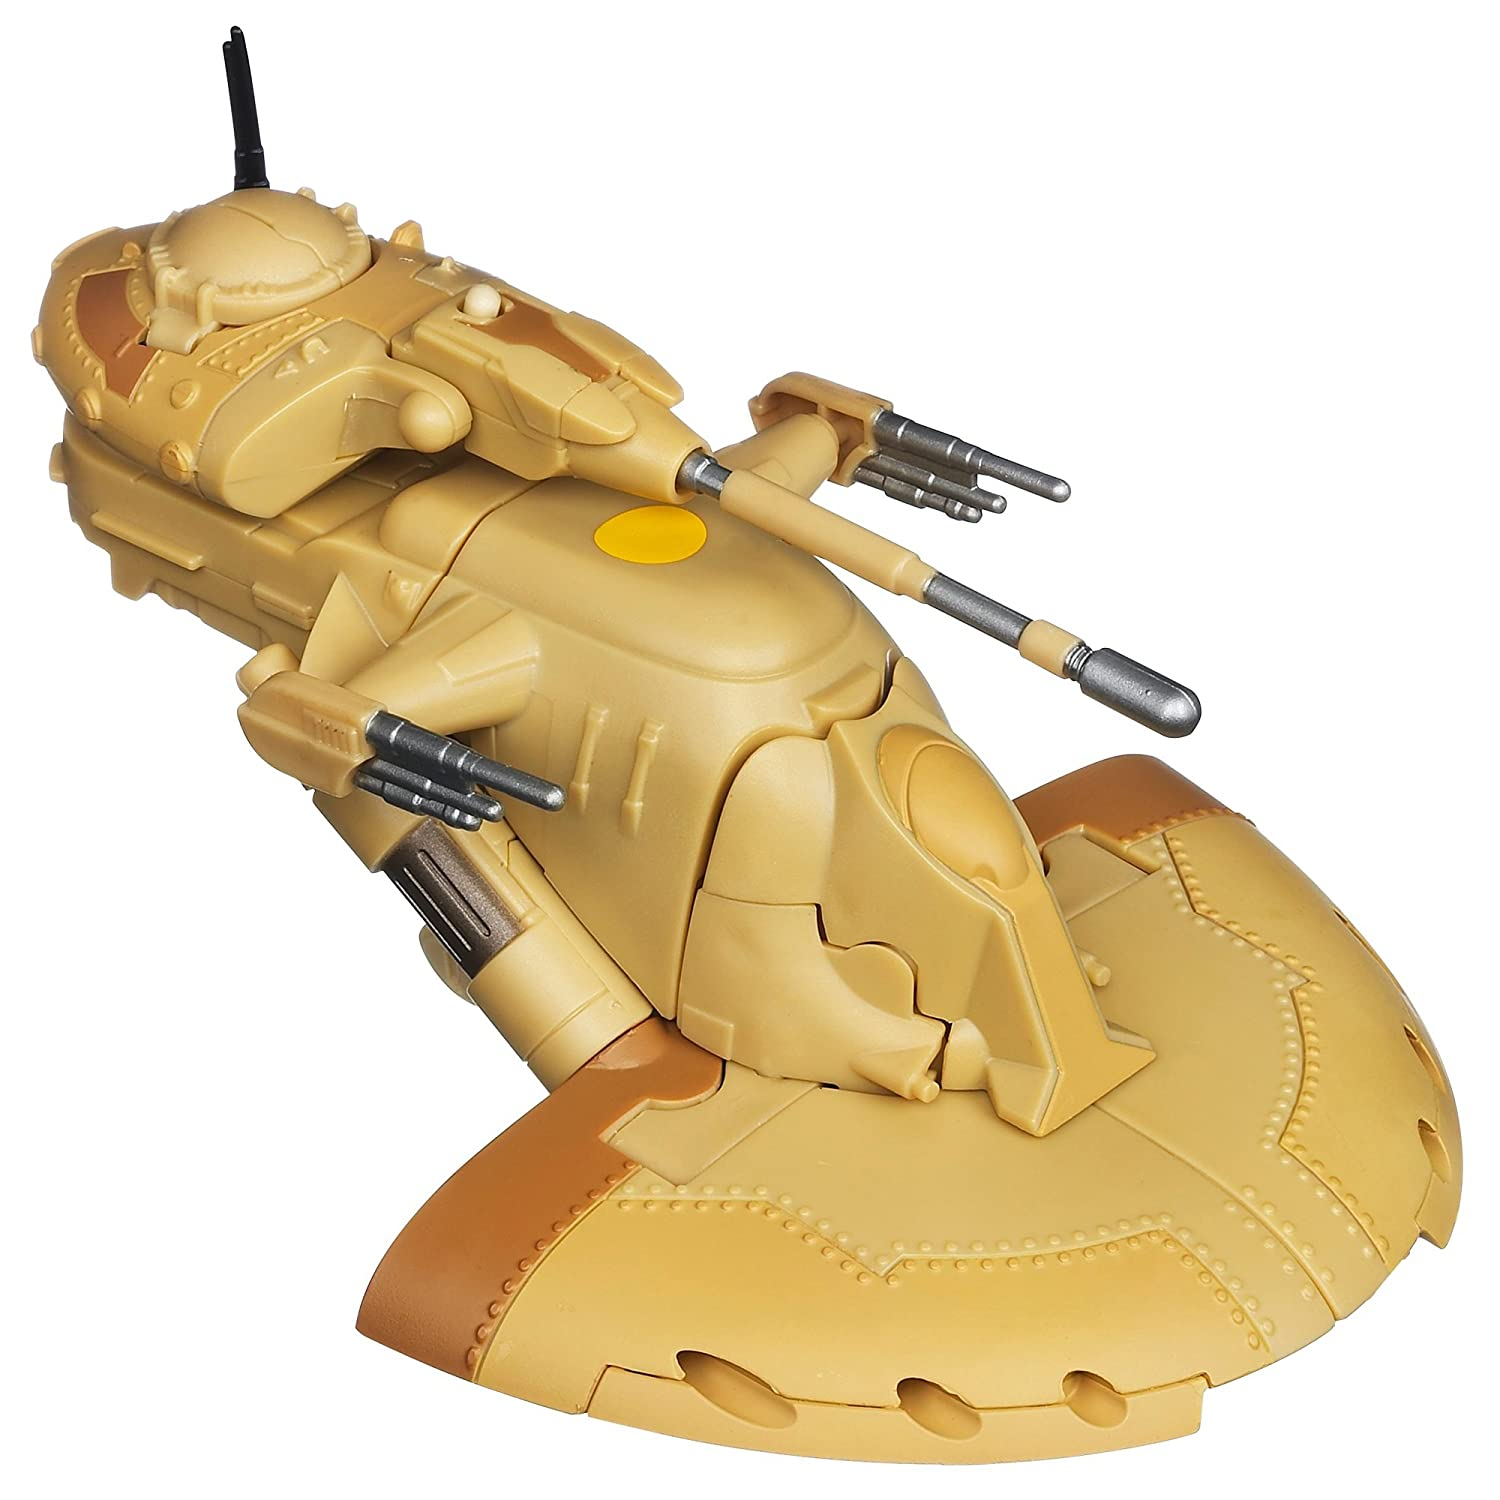 Star Wars Transformer Action Figure - Battle Droid to AAT